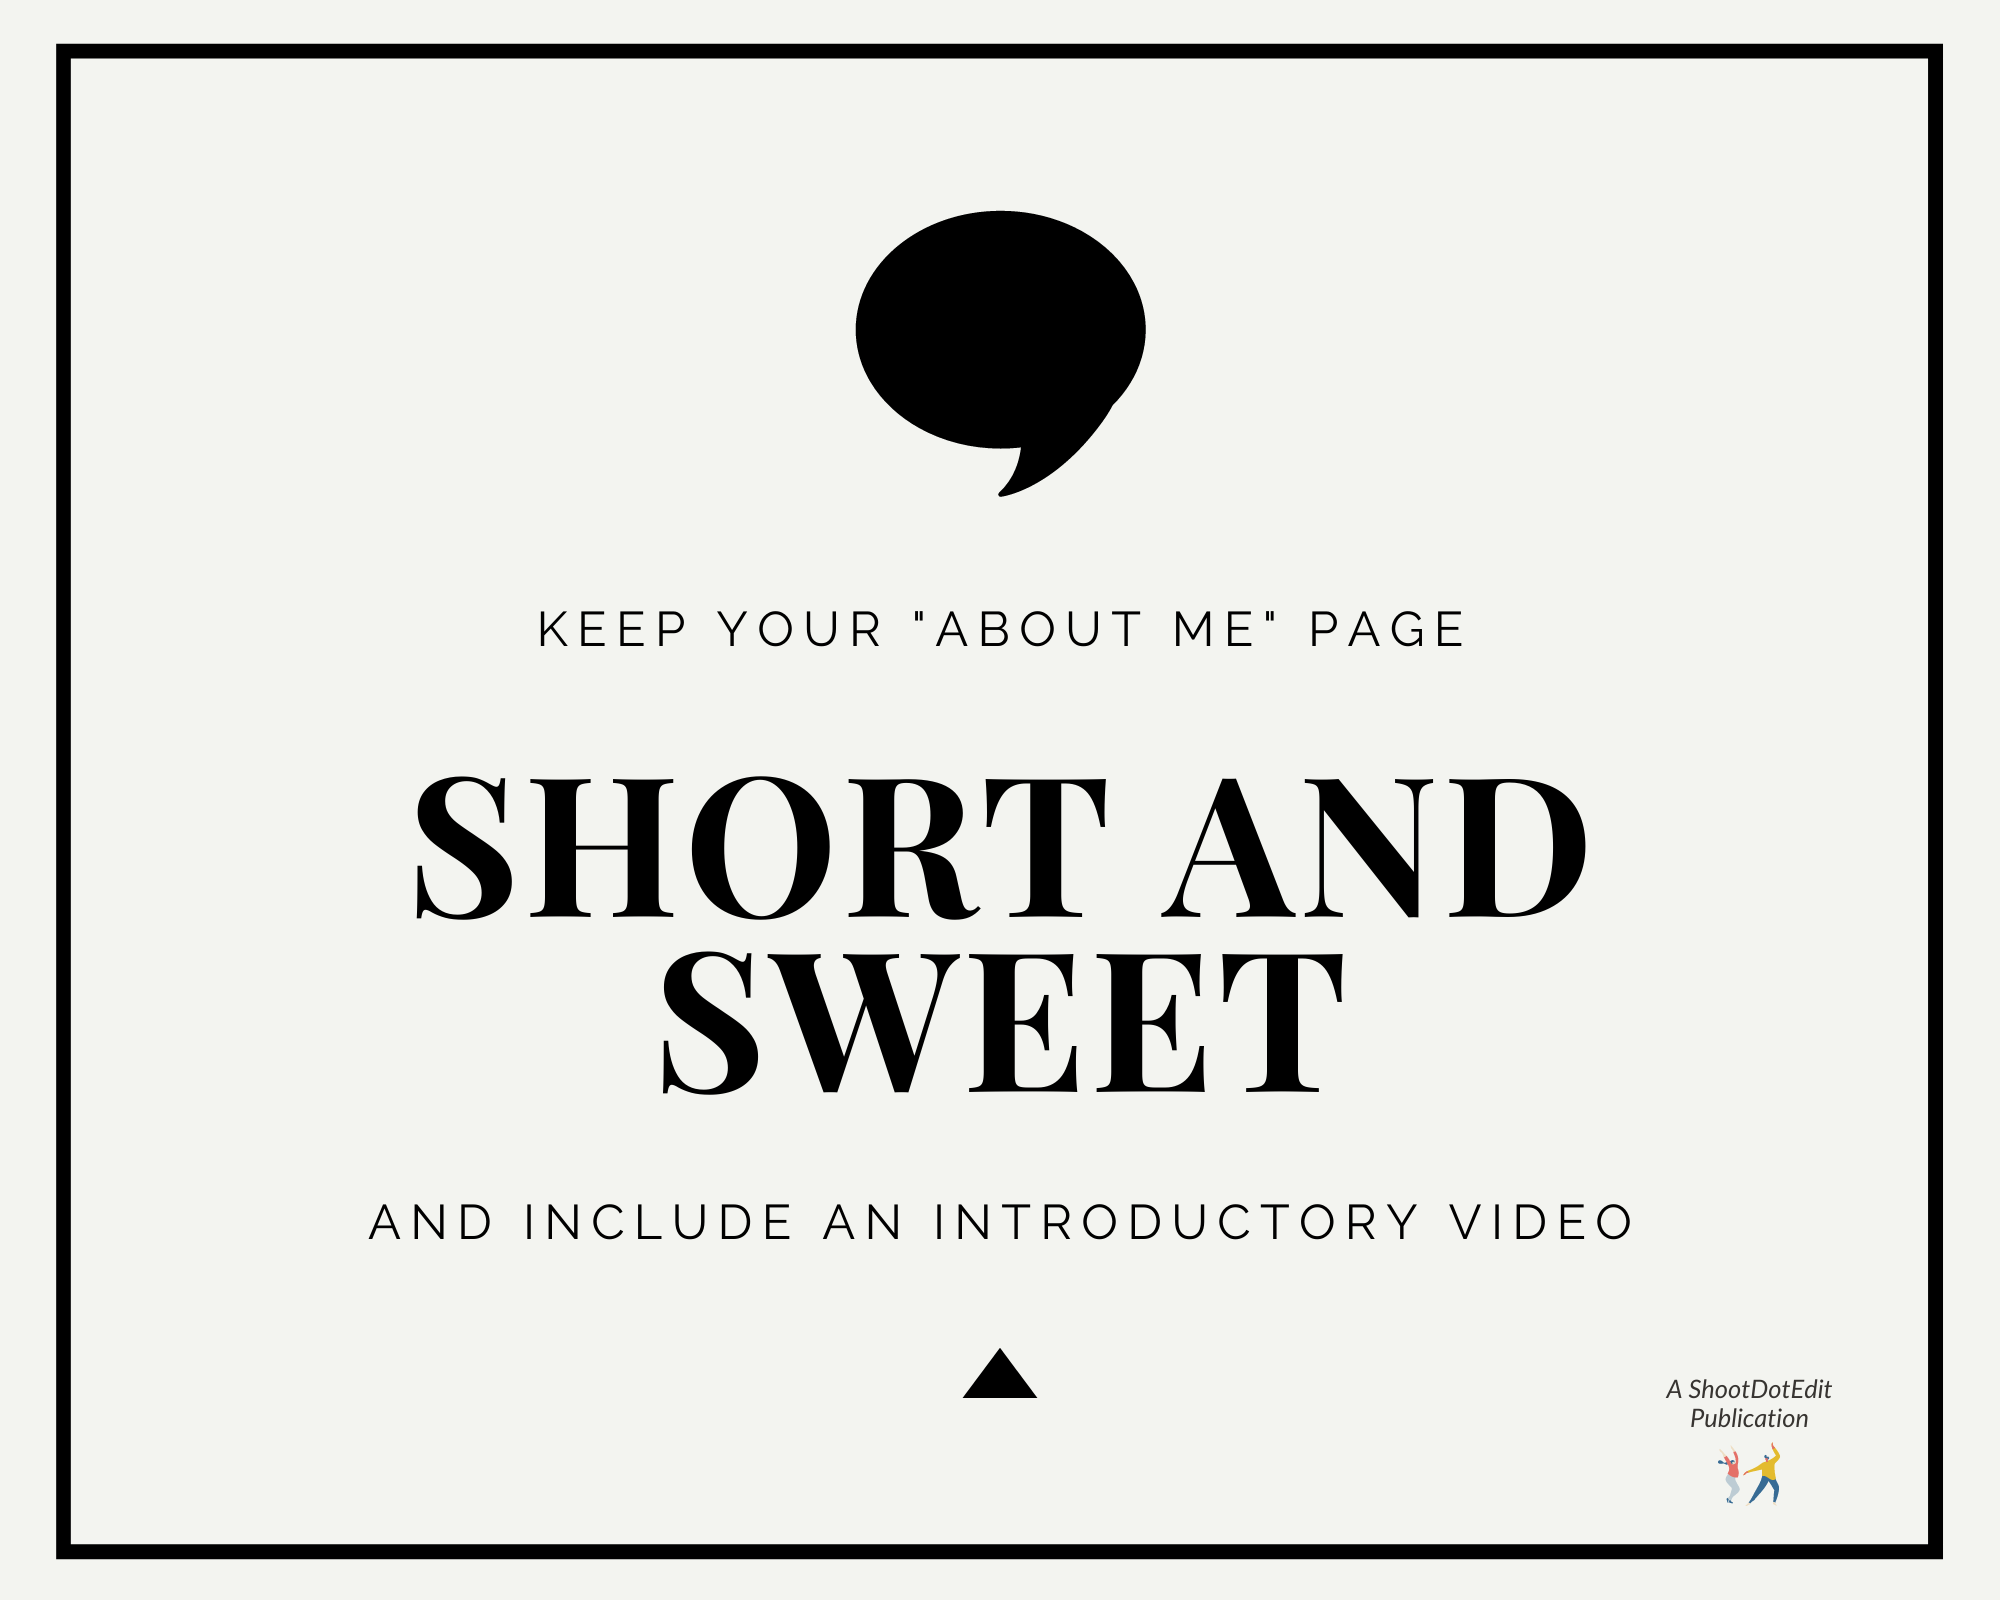 Infographic stating keep your info short and sweet and include an introductory video